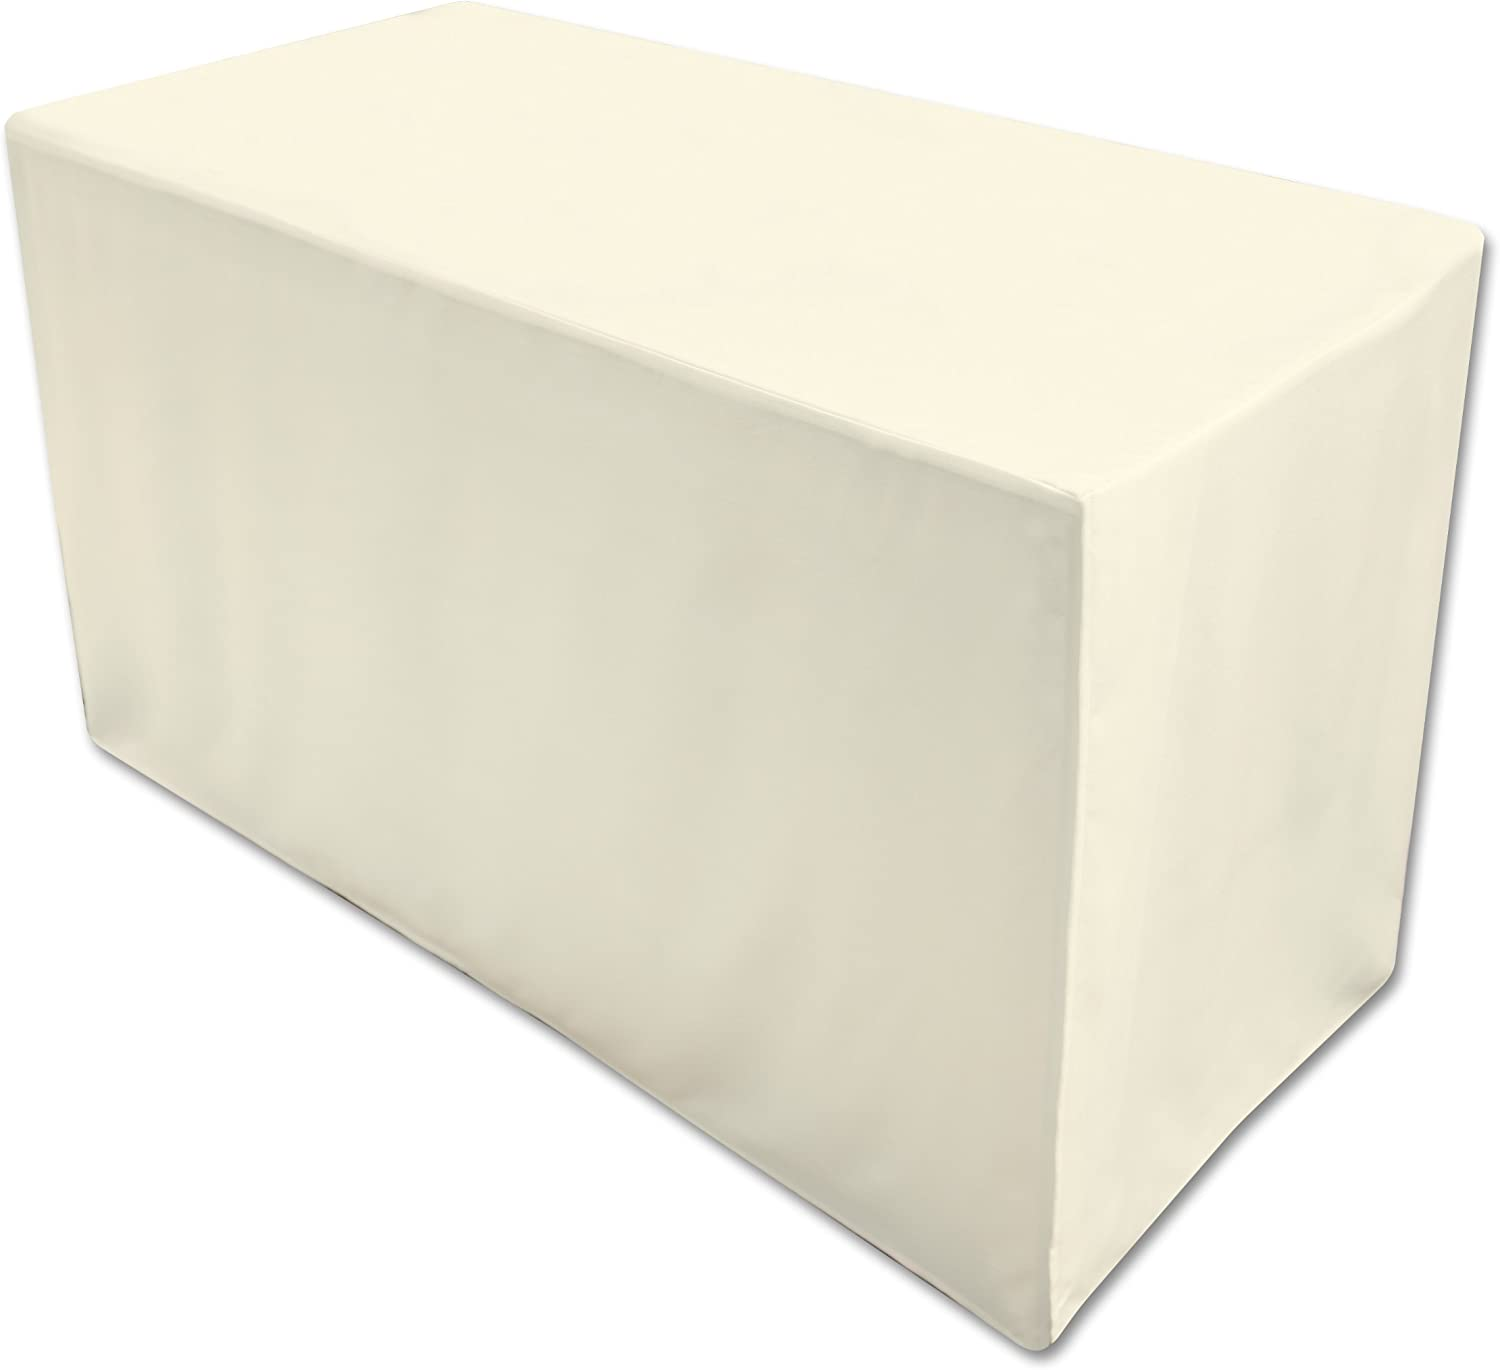 Amazon Com Folding Table Cover Fitted Tablecloth For 6 Foot Folding Table Ivory Home Kitchen